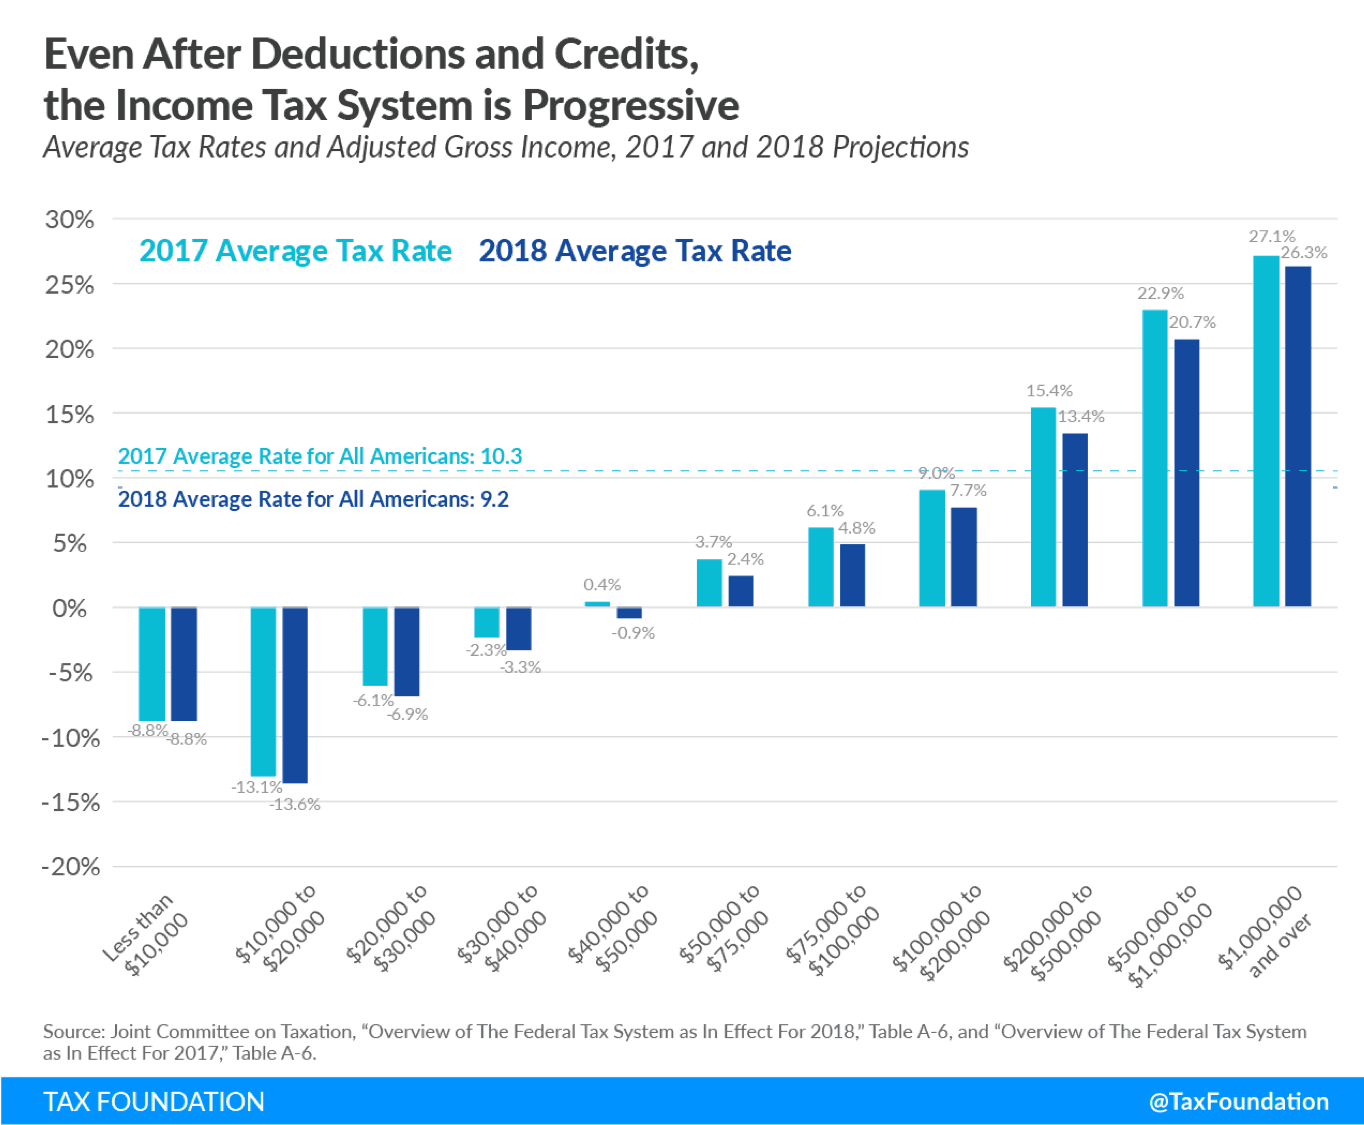 tax rate versus income group including deductions and credits for 2017 and 2018